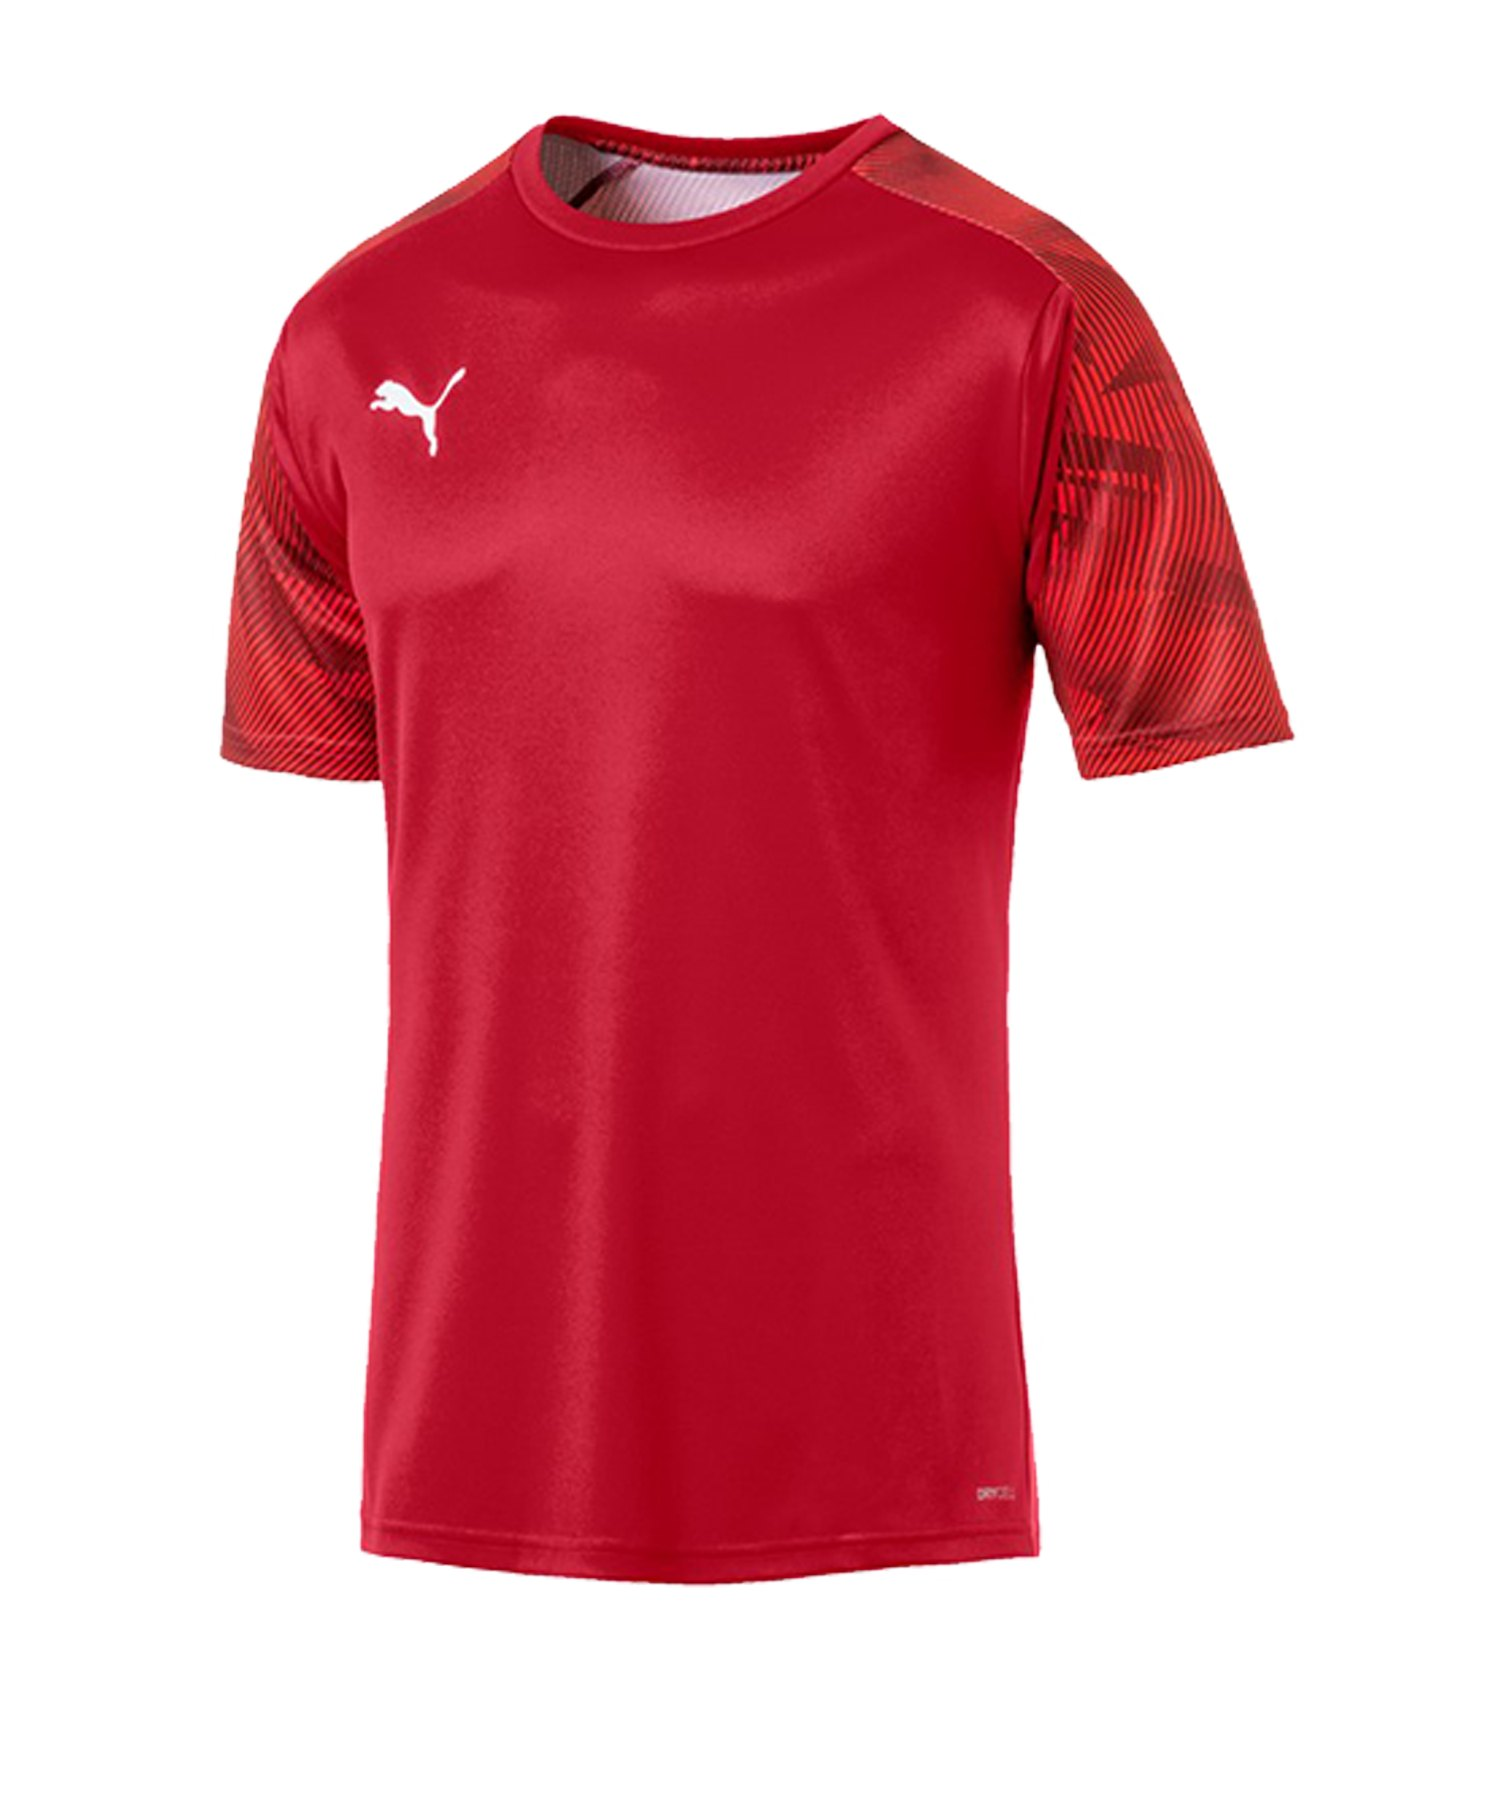 PUMA CUP Training T-Shirt Rot F01 - rot